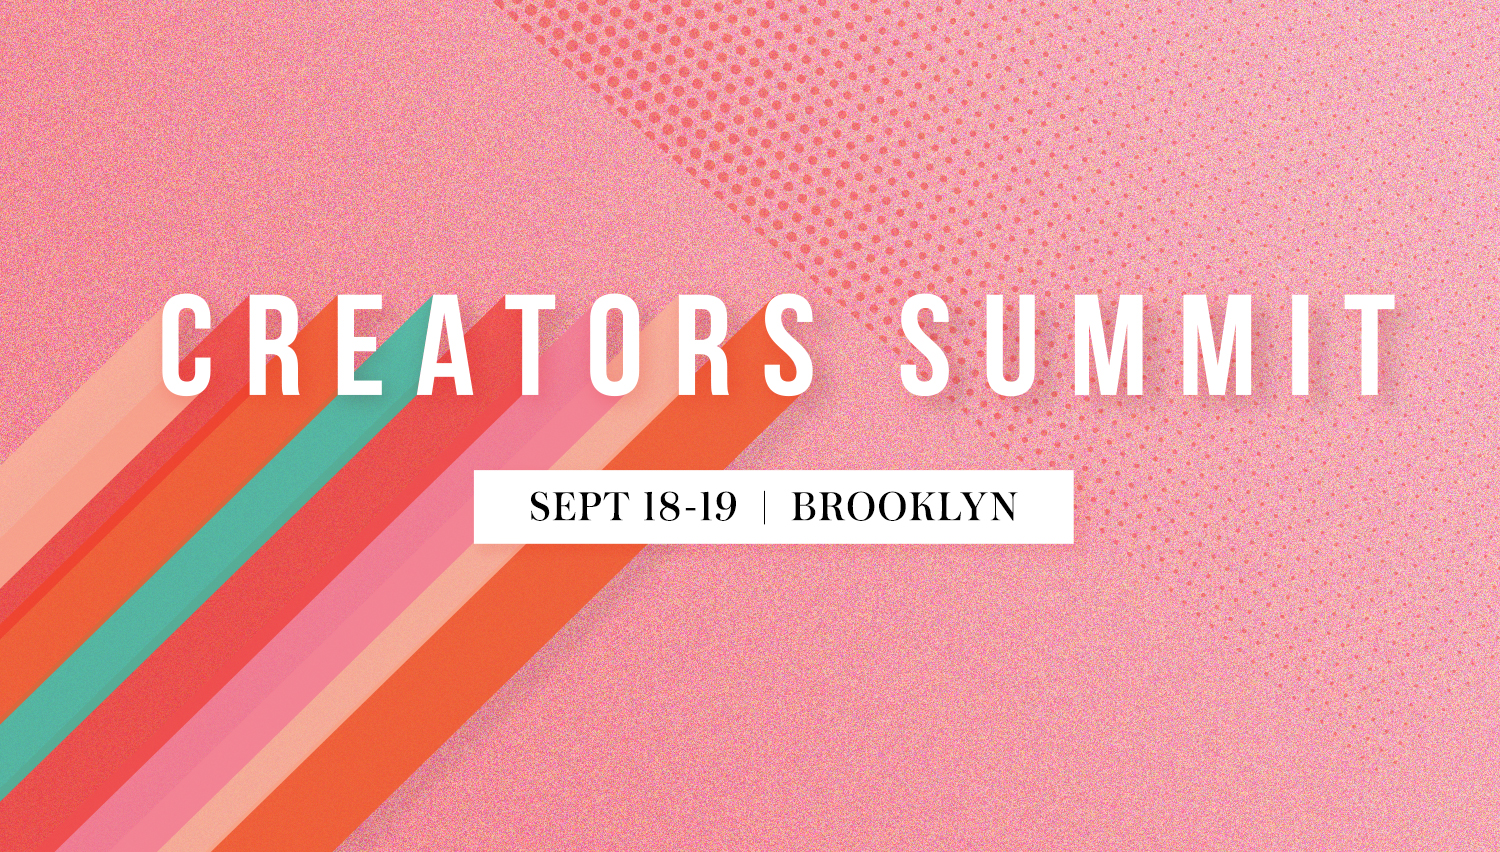 #Blogher19 creators summit is coming to brooklyn - Join us on September 18th and 19th for the largest event for women content creators in the world. Connect, learn and get empowered with 1500+ fellow bloggers, social media influencers and entrepreneurs at the Brooklyn Expo Center this fall.